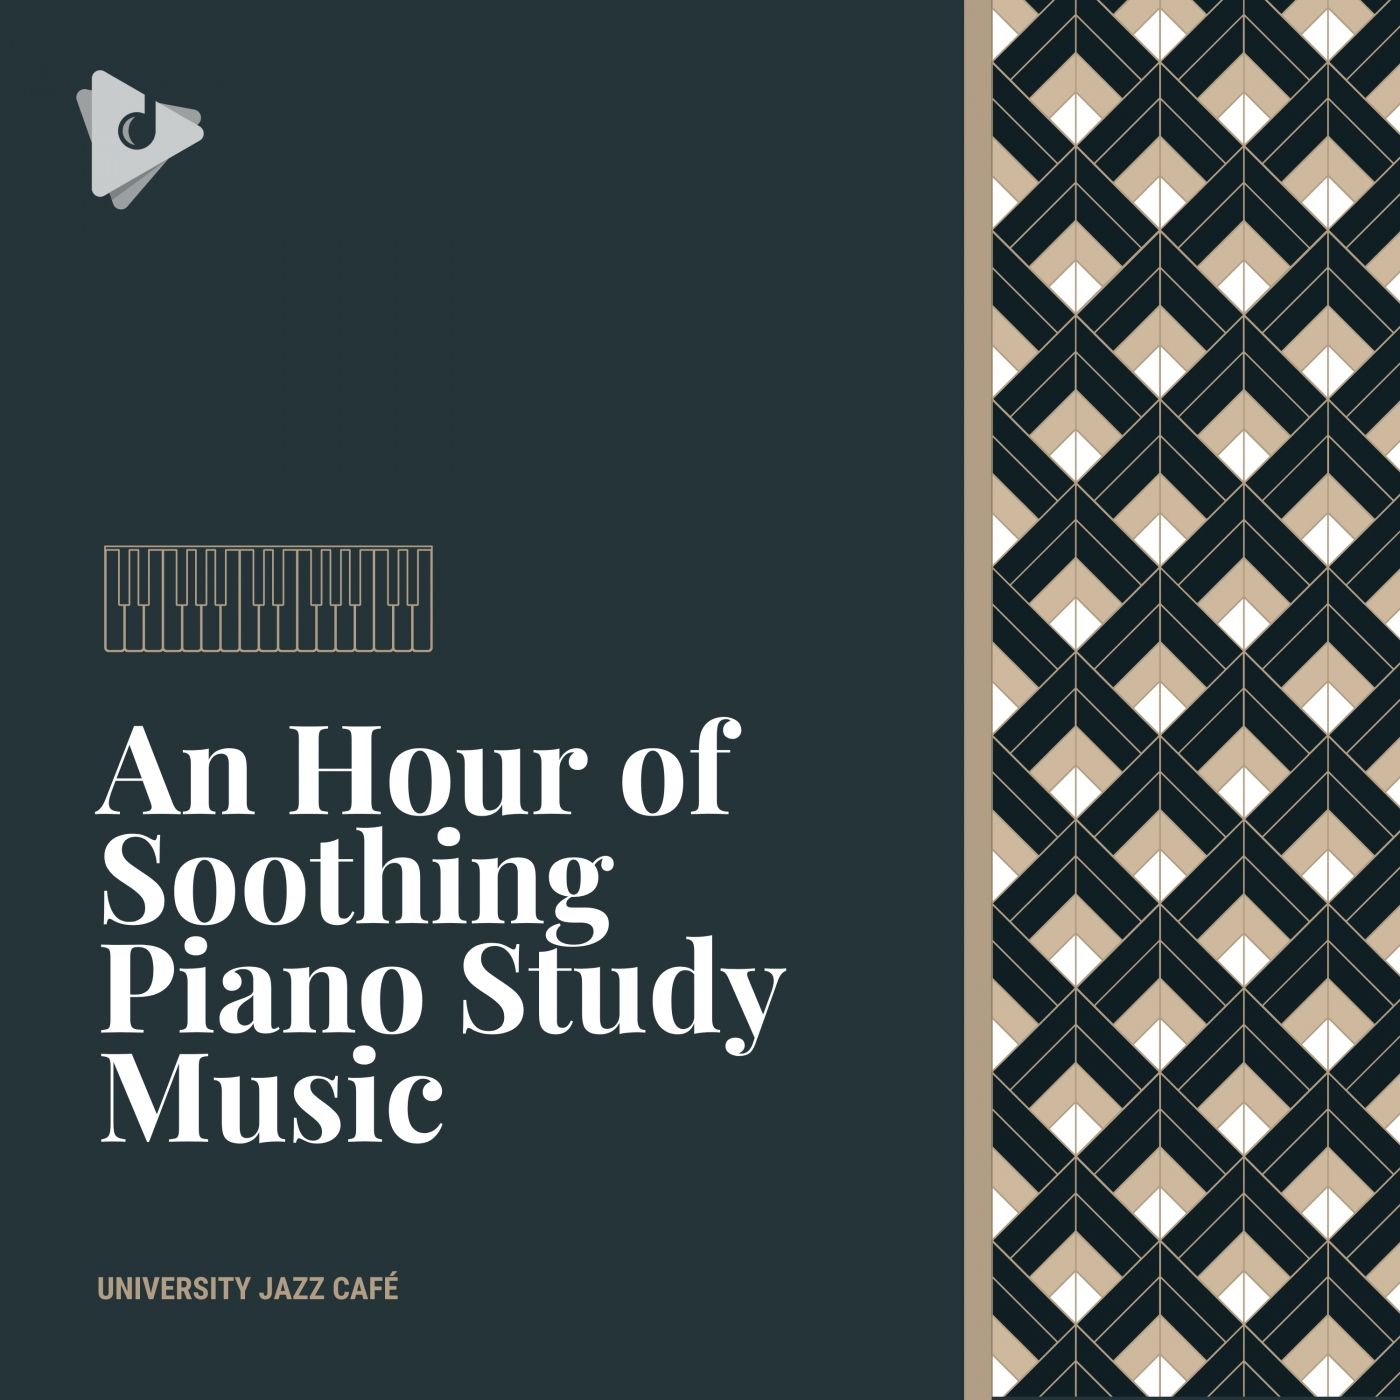 An Hour of Soothing Piano Study Music